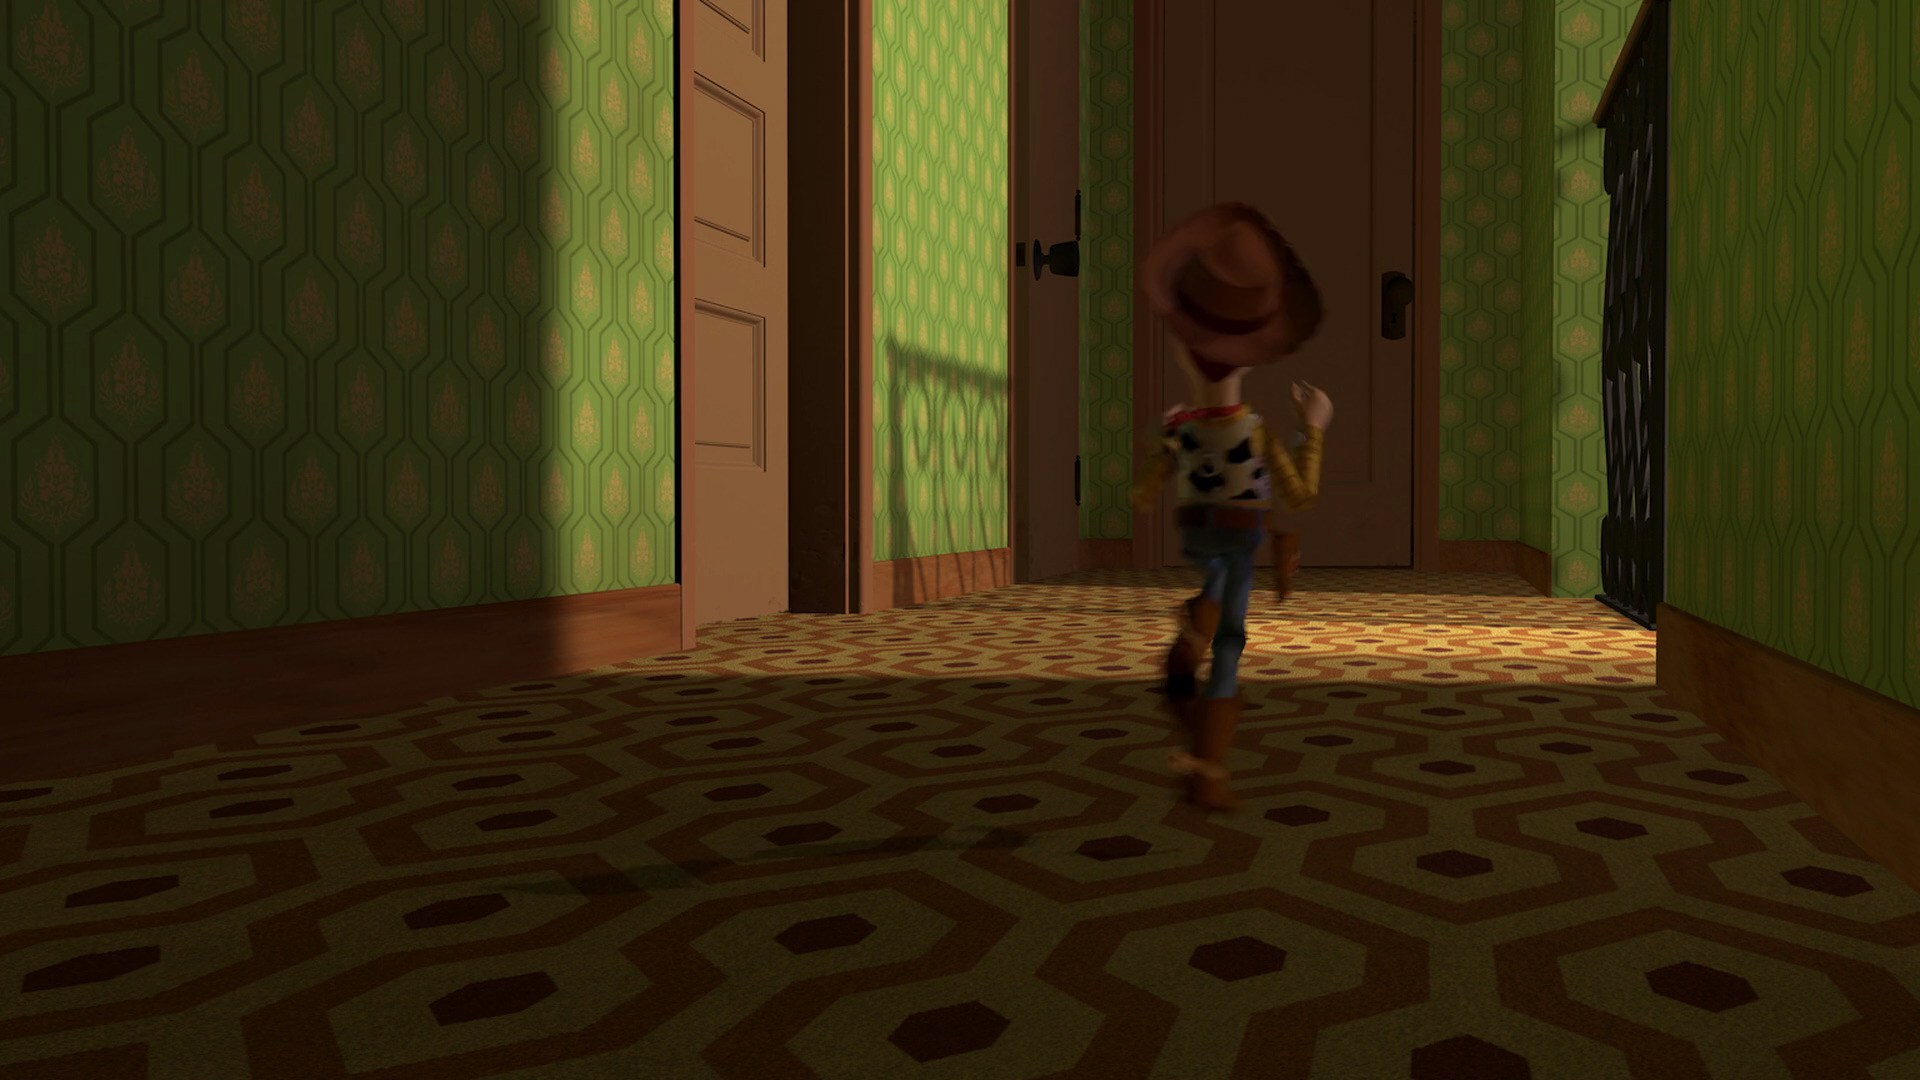 Stanley Kubrick References in Pixar Productions